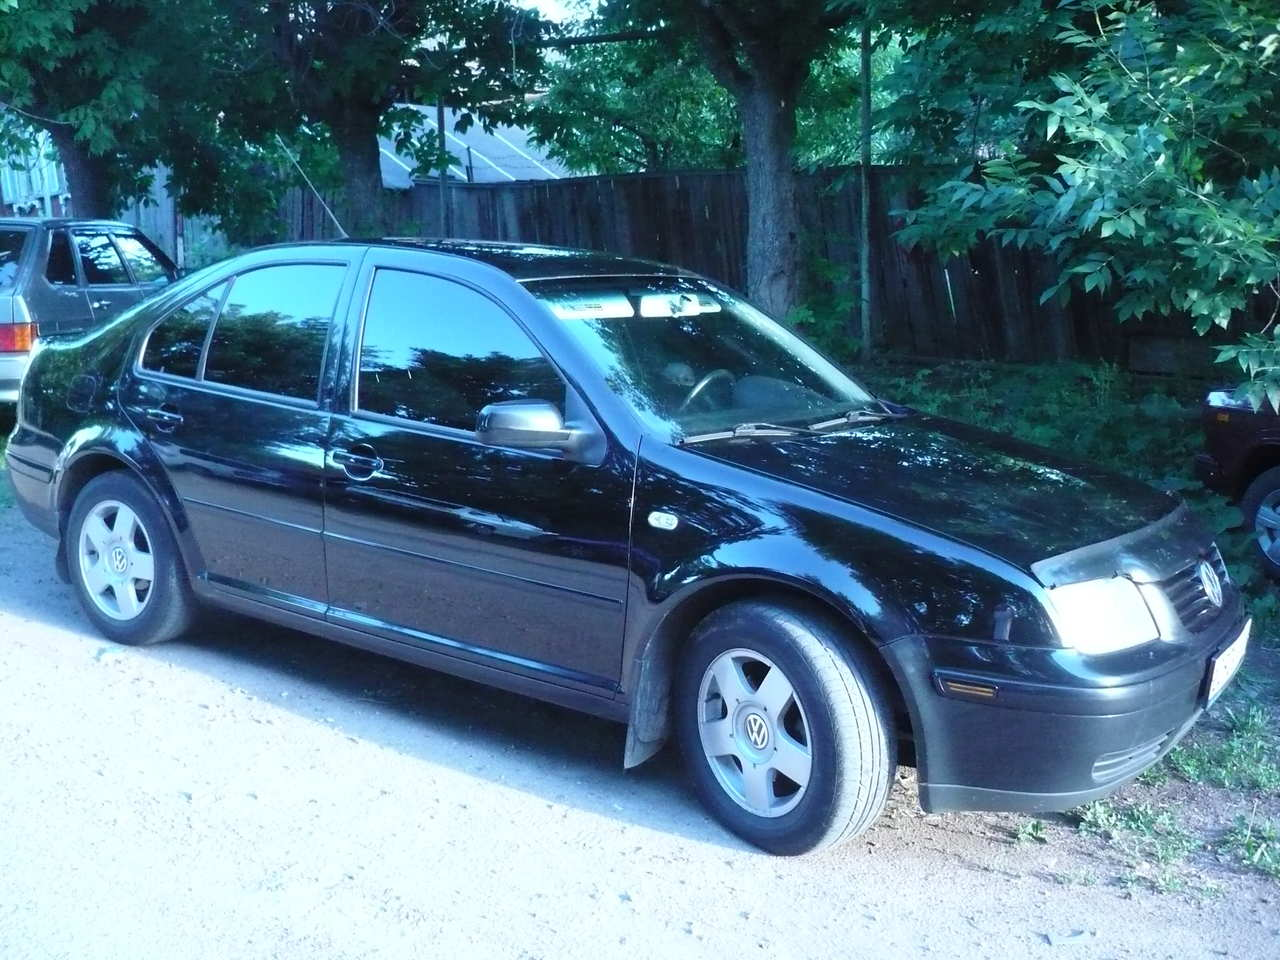 used 2001 volkswagen jetta photos 1900cc diesel ff automatic for sale. Black Bedroom Furniture Sets. Home Design Ideas